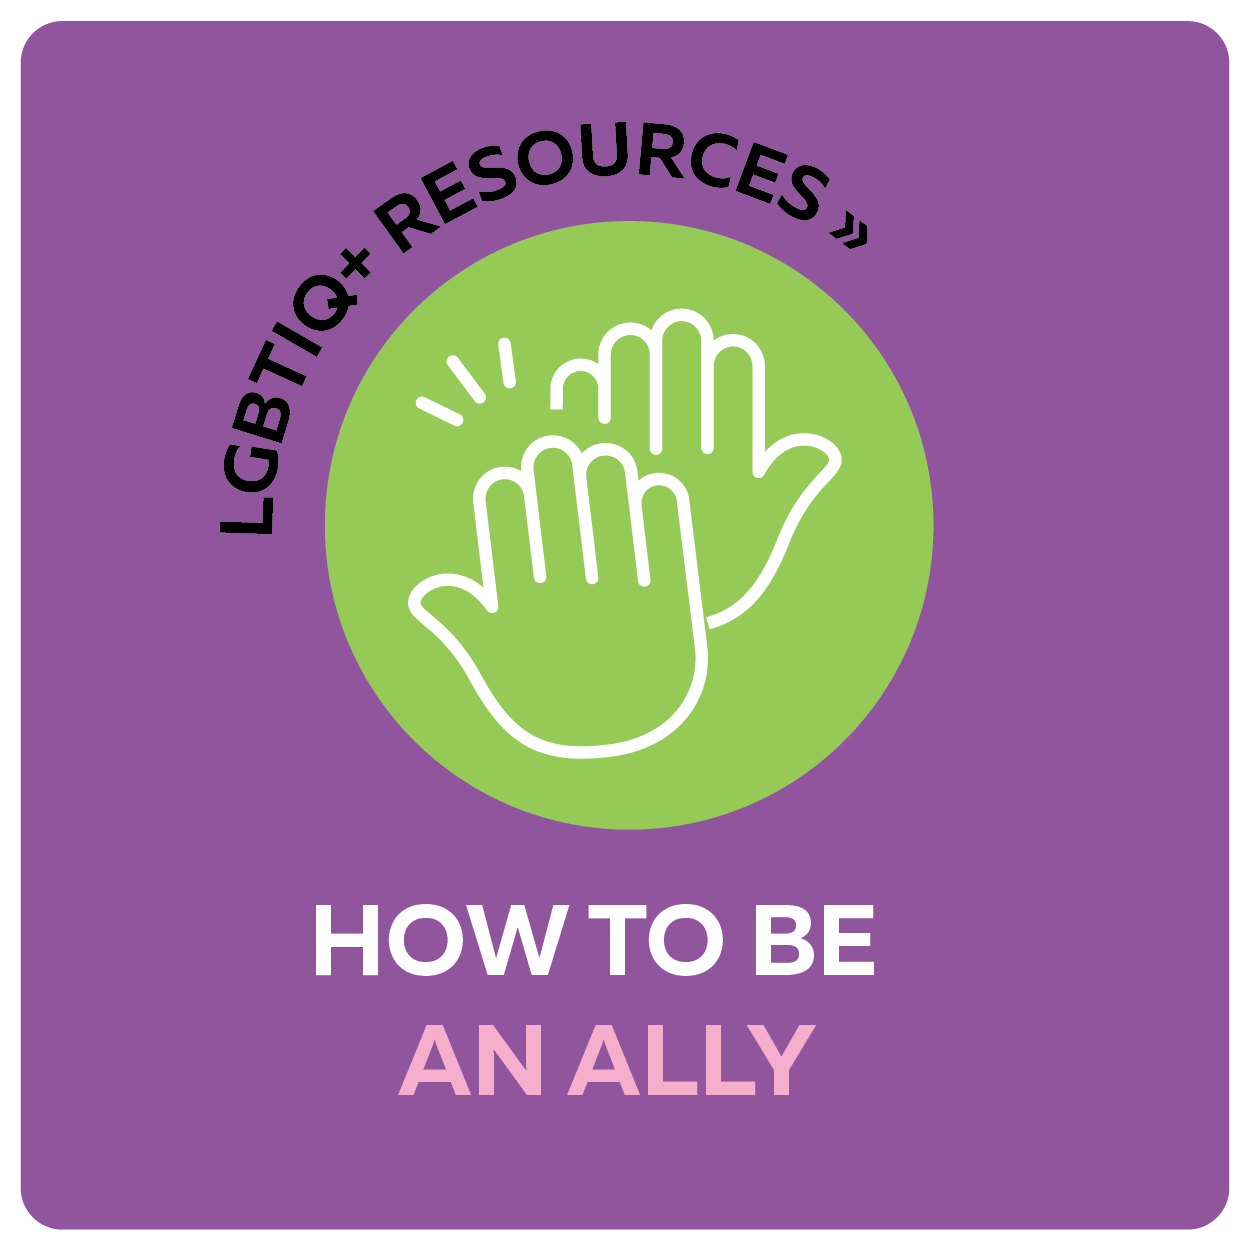 LGBTIQ+ resources - how to be an ally